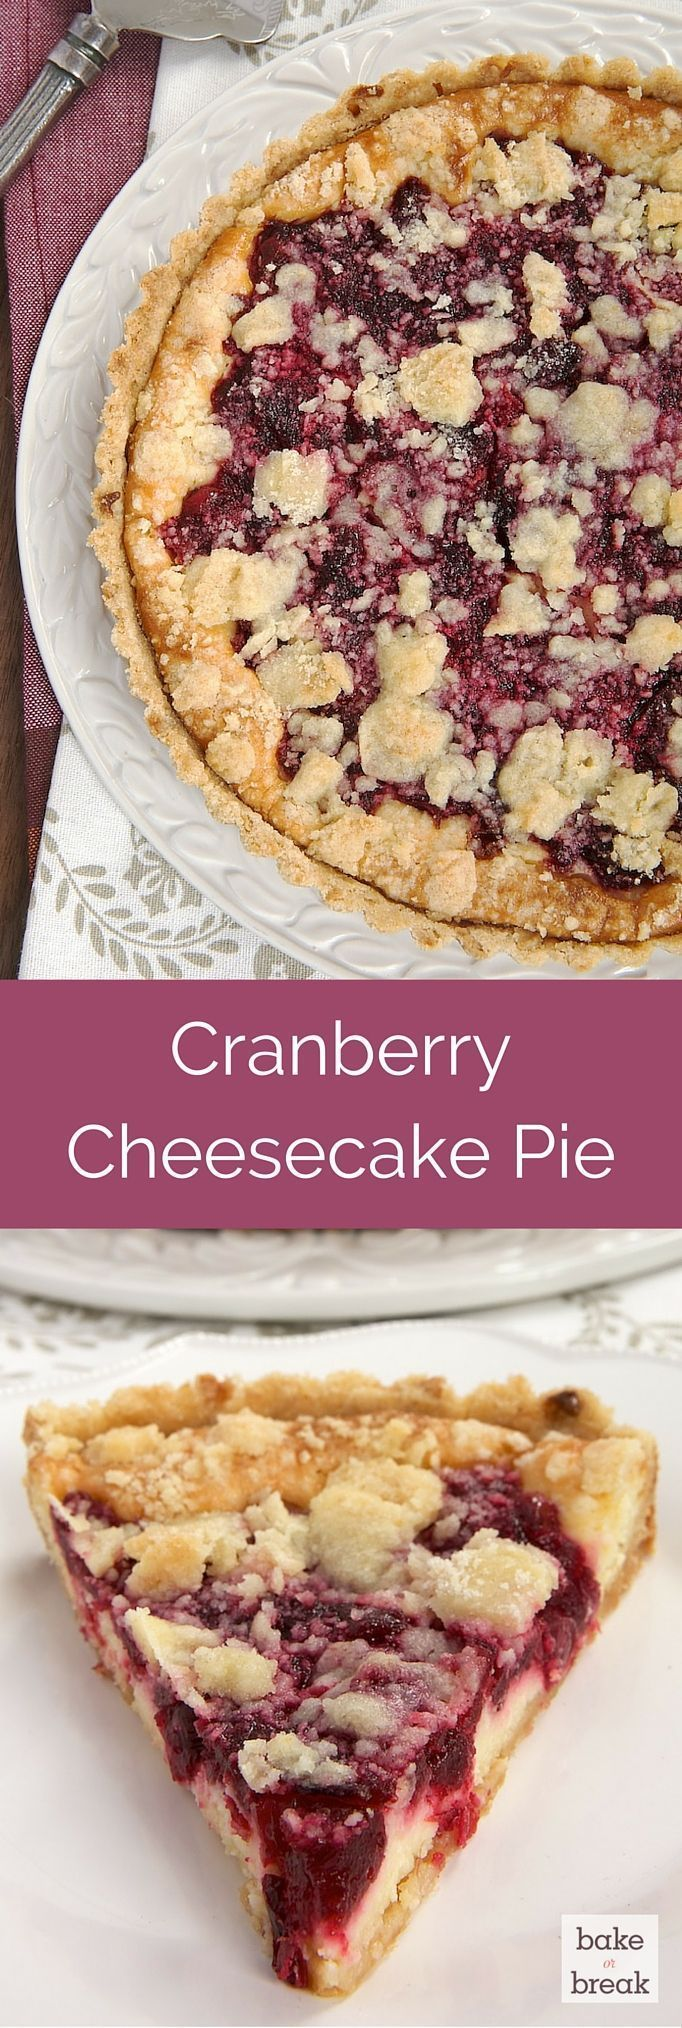 A buttery crust, sweet cheesecake, tart cranberries, and a crumb topping make this Cranberry Cheesecake Pie irresistible! ~ http://www.bakeorbreak.com